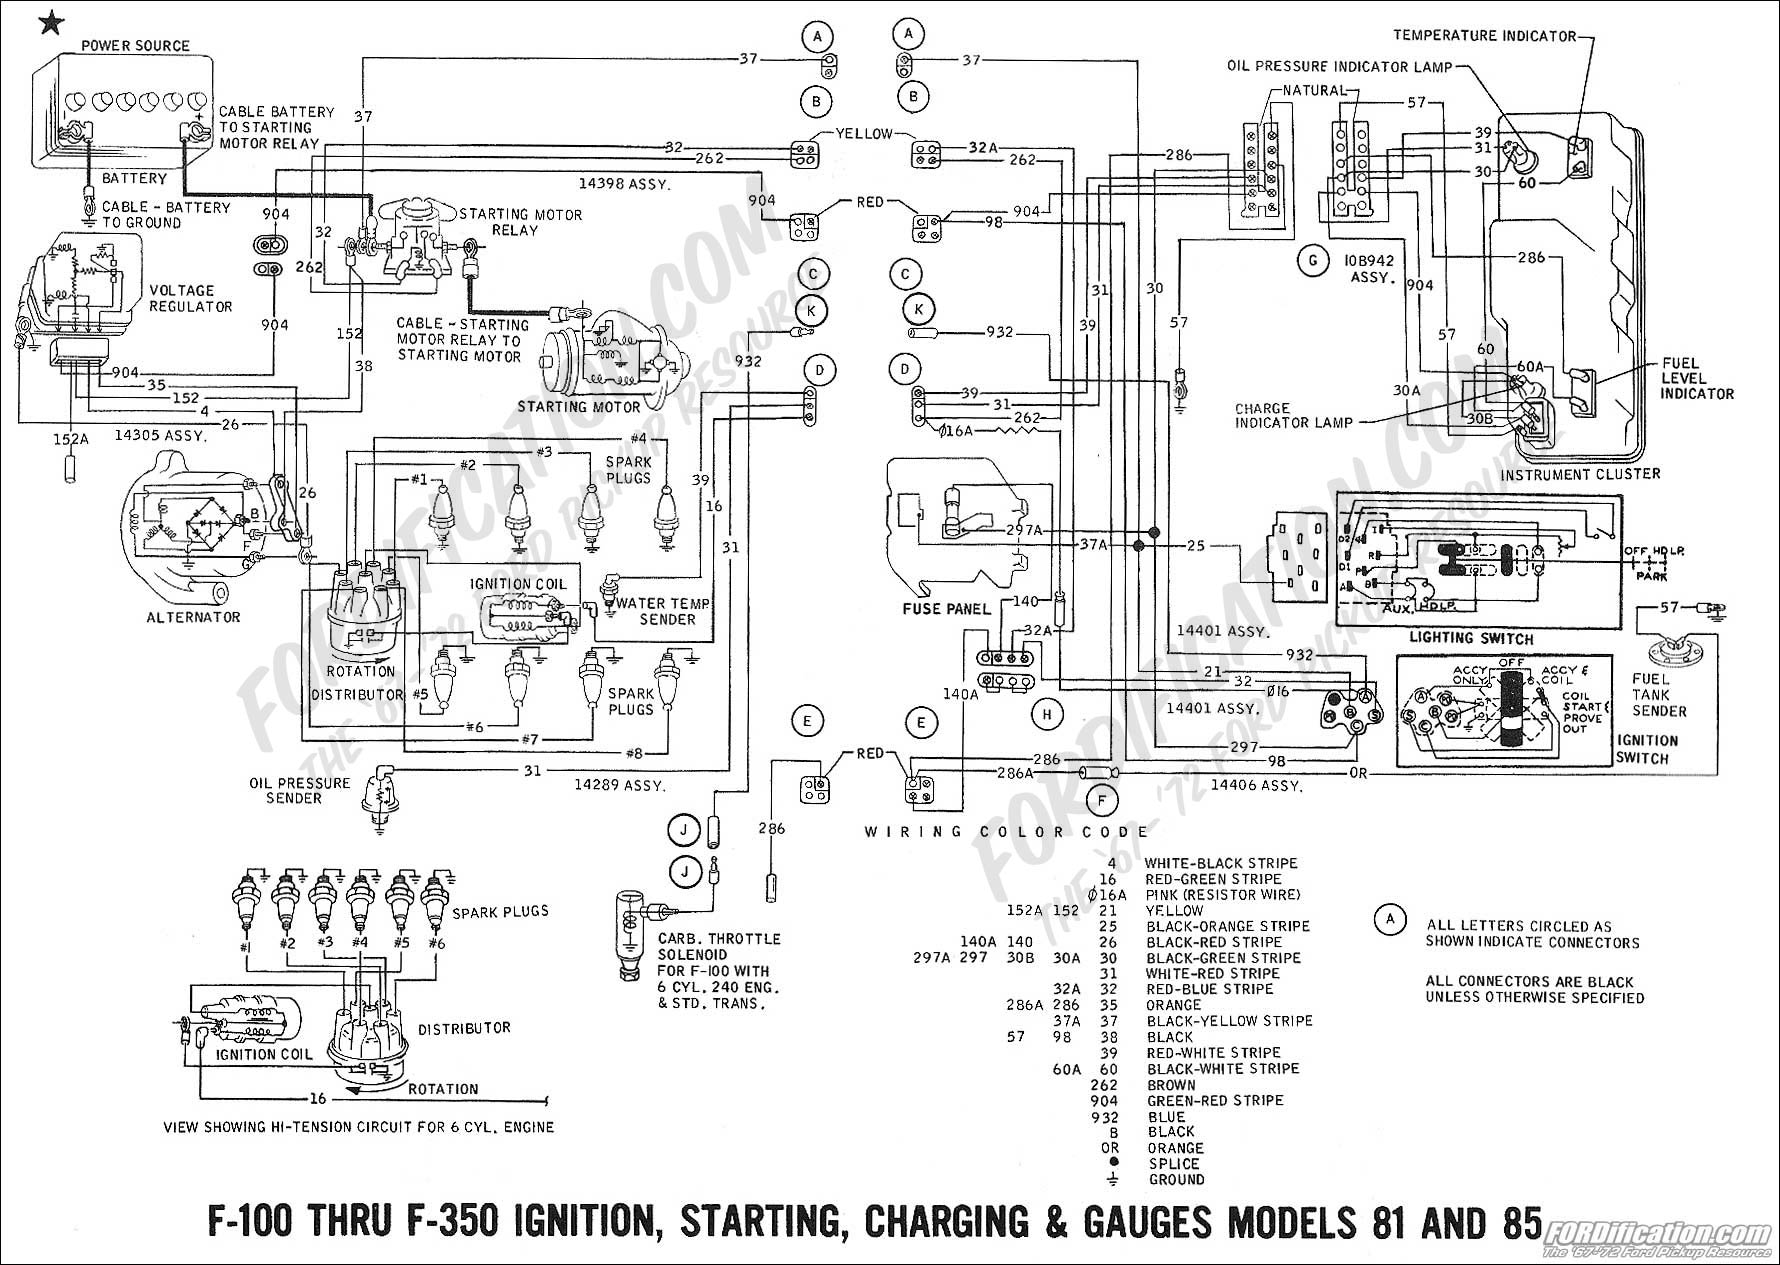 ford truck wiring wiring diagramford truck technical drawings and schematics section h wiring1969 f 100 thru f 350 ignition,